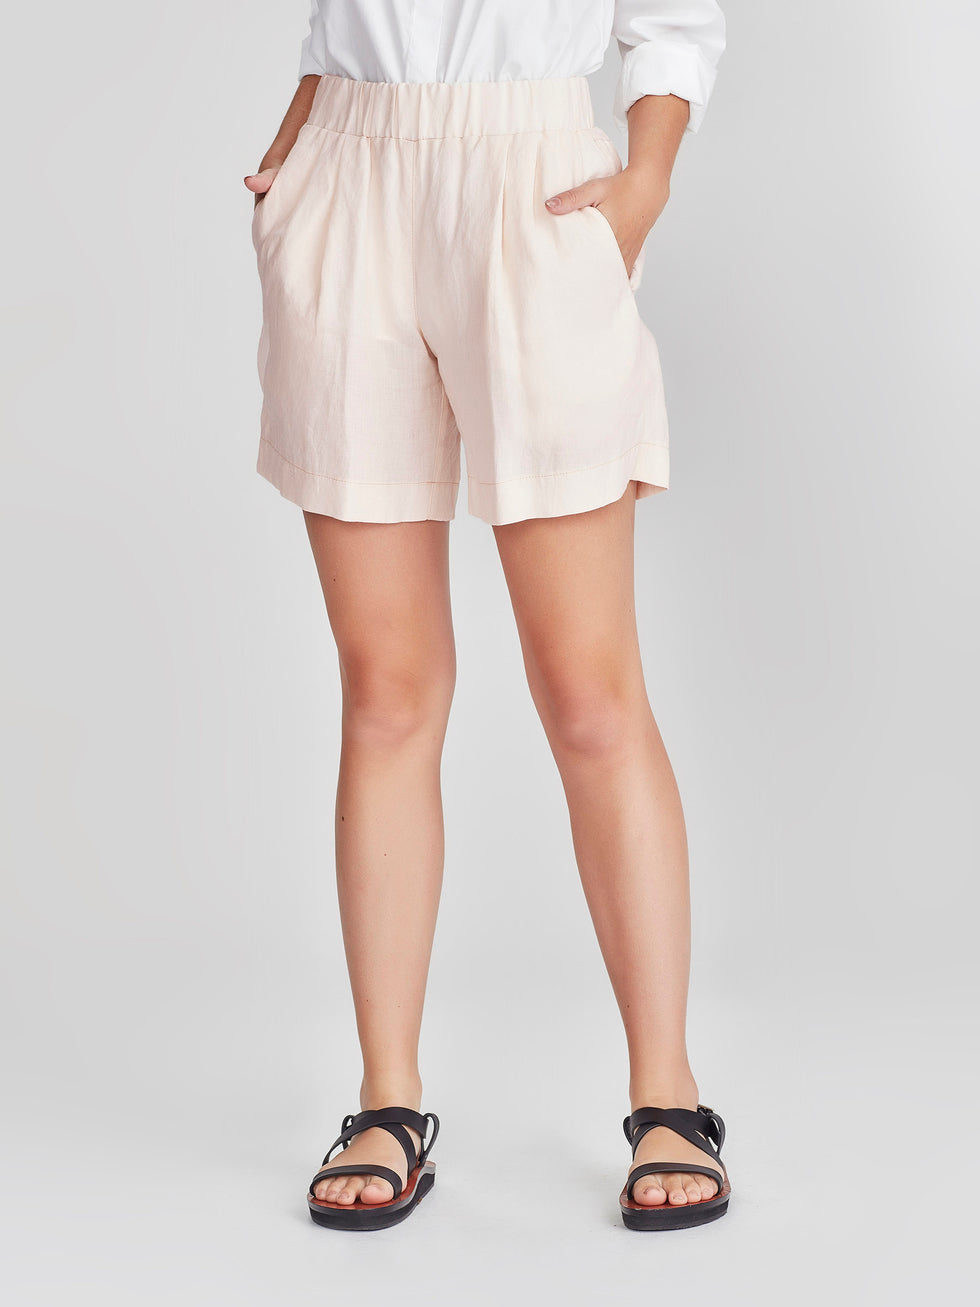 Margarita Short (Summer Linen) Ballet